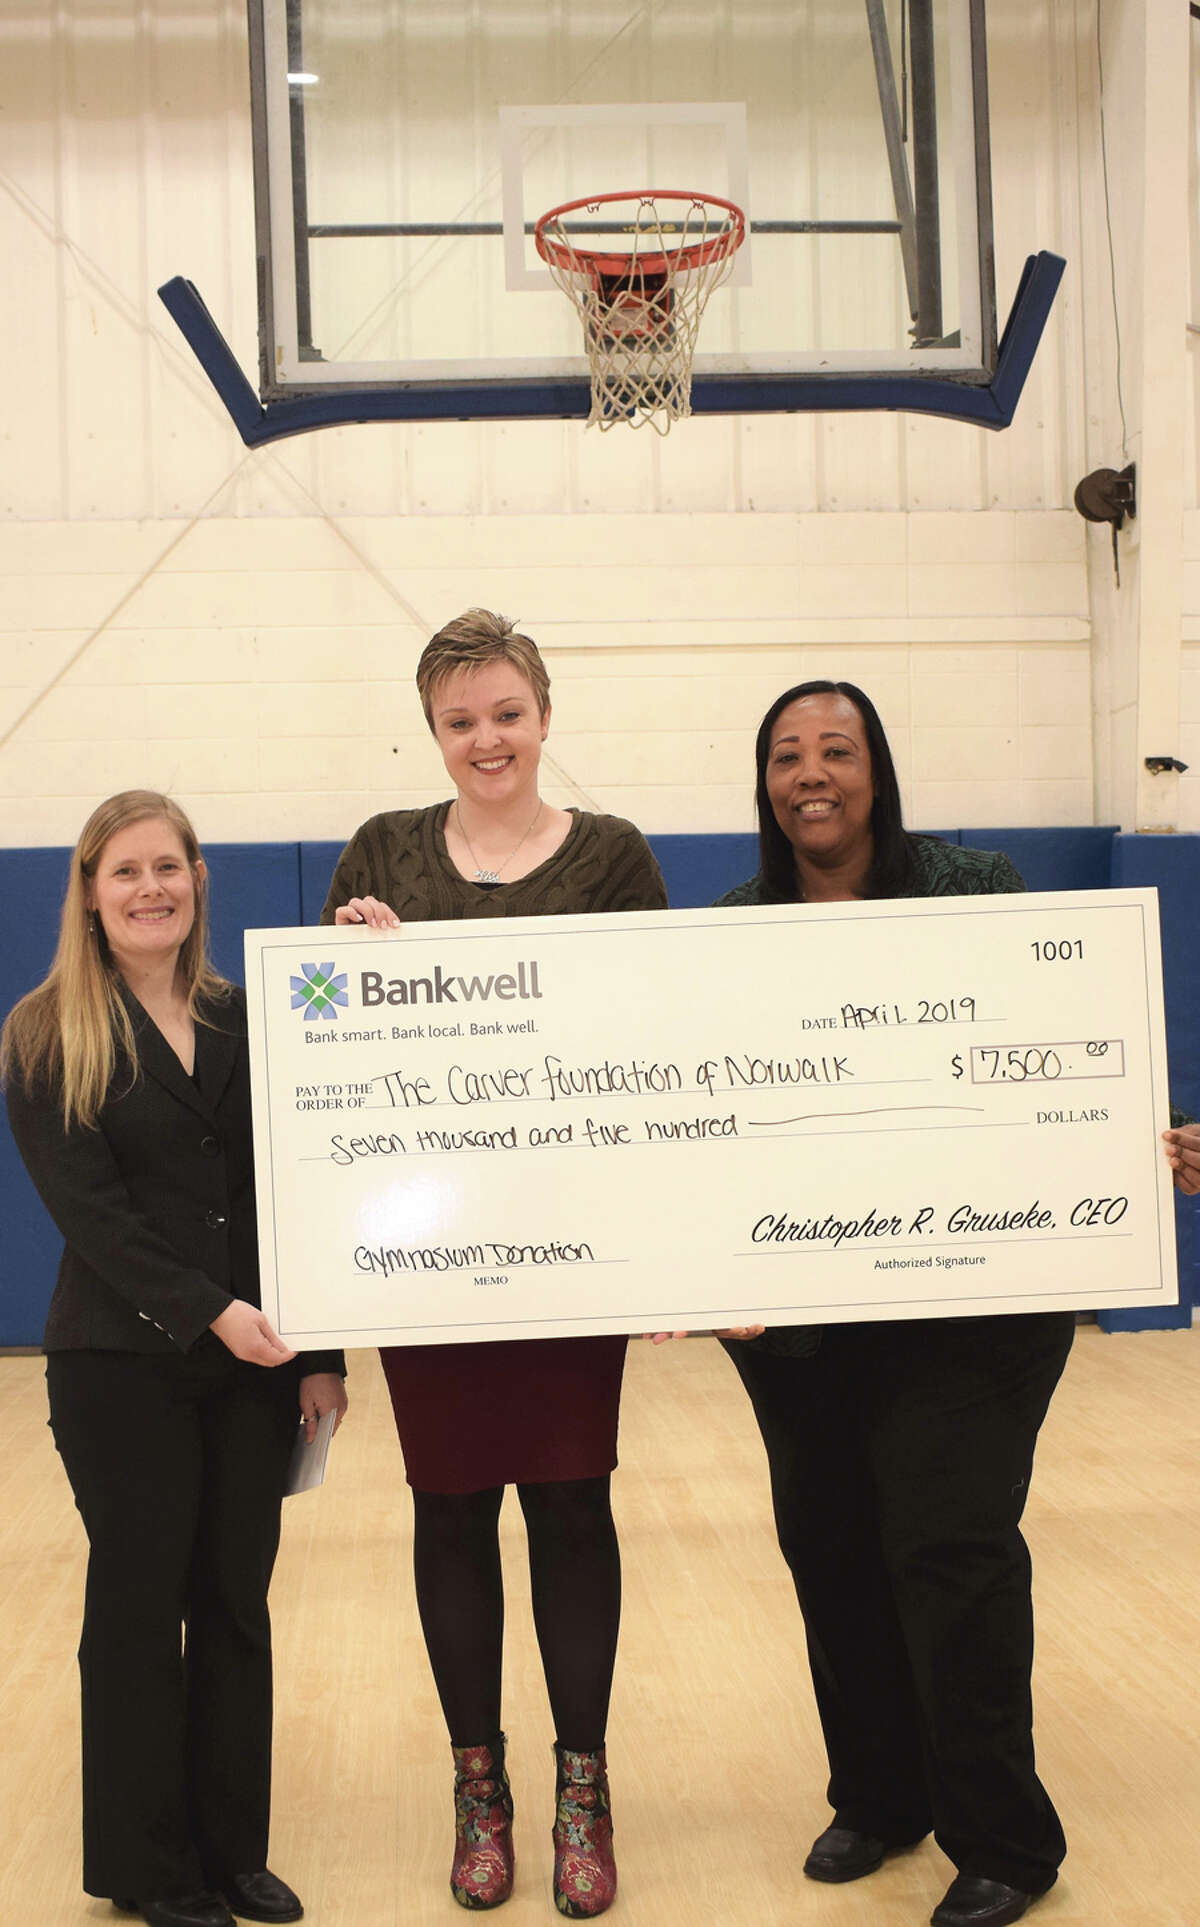 Nikki LaFaye, director of philanthropy at The Carver Foundation of Norwalk, Lucy French, assistant vice president and marketing manager at Bankwell, and Novelette Peterkin, CEO of the Carver Foundation of Norwalk, announce a $5,000 donation toward a gym expansion that will allow basketball programs to grow. Bankwell / Contributed photo